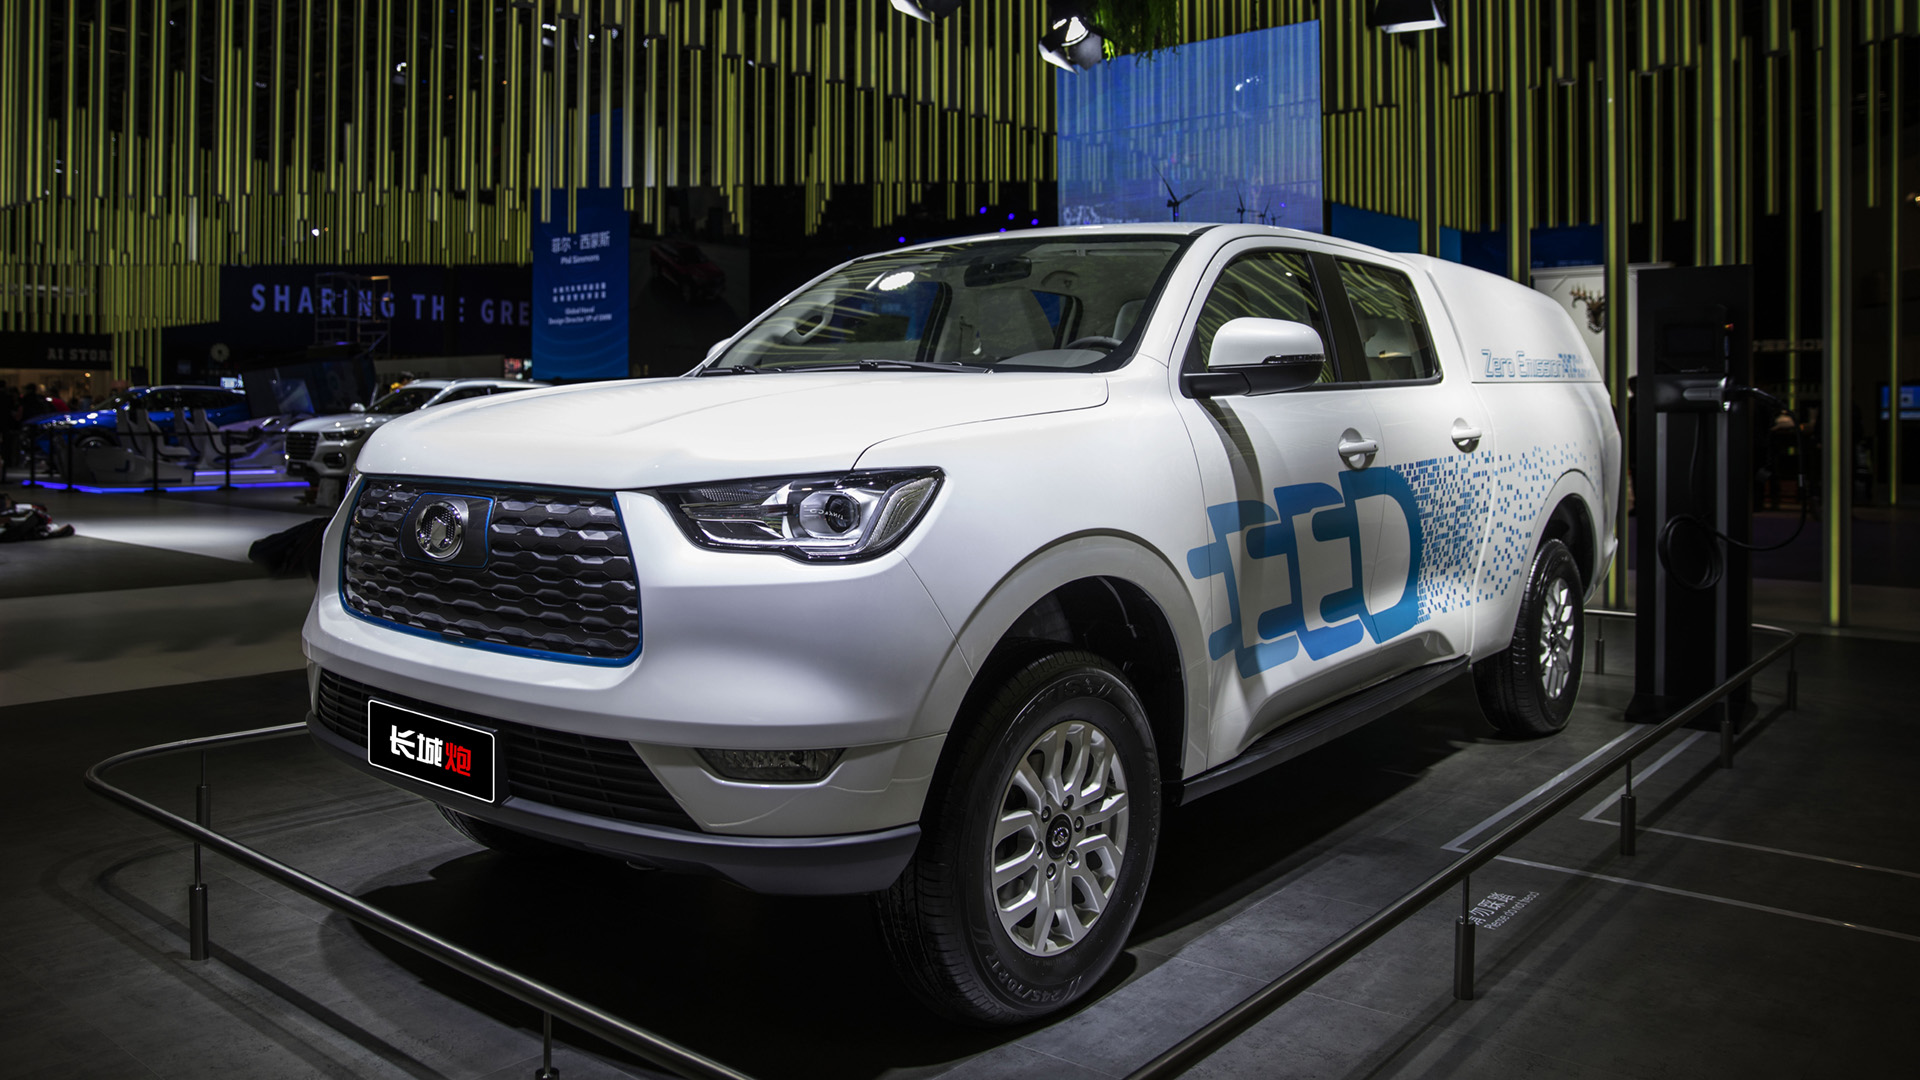 The commercial pickup features a pure electric engine and futuristic design.